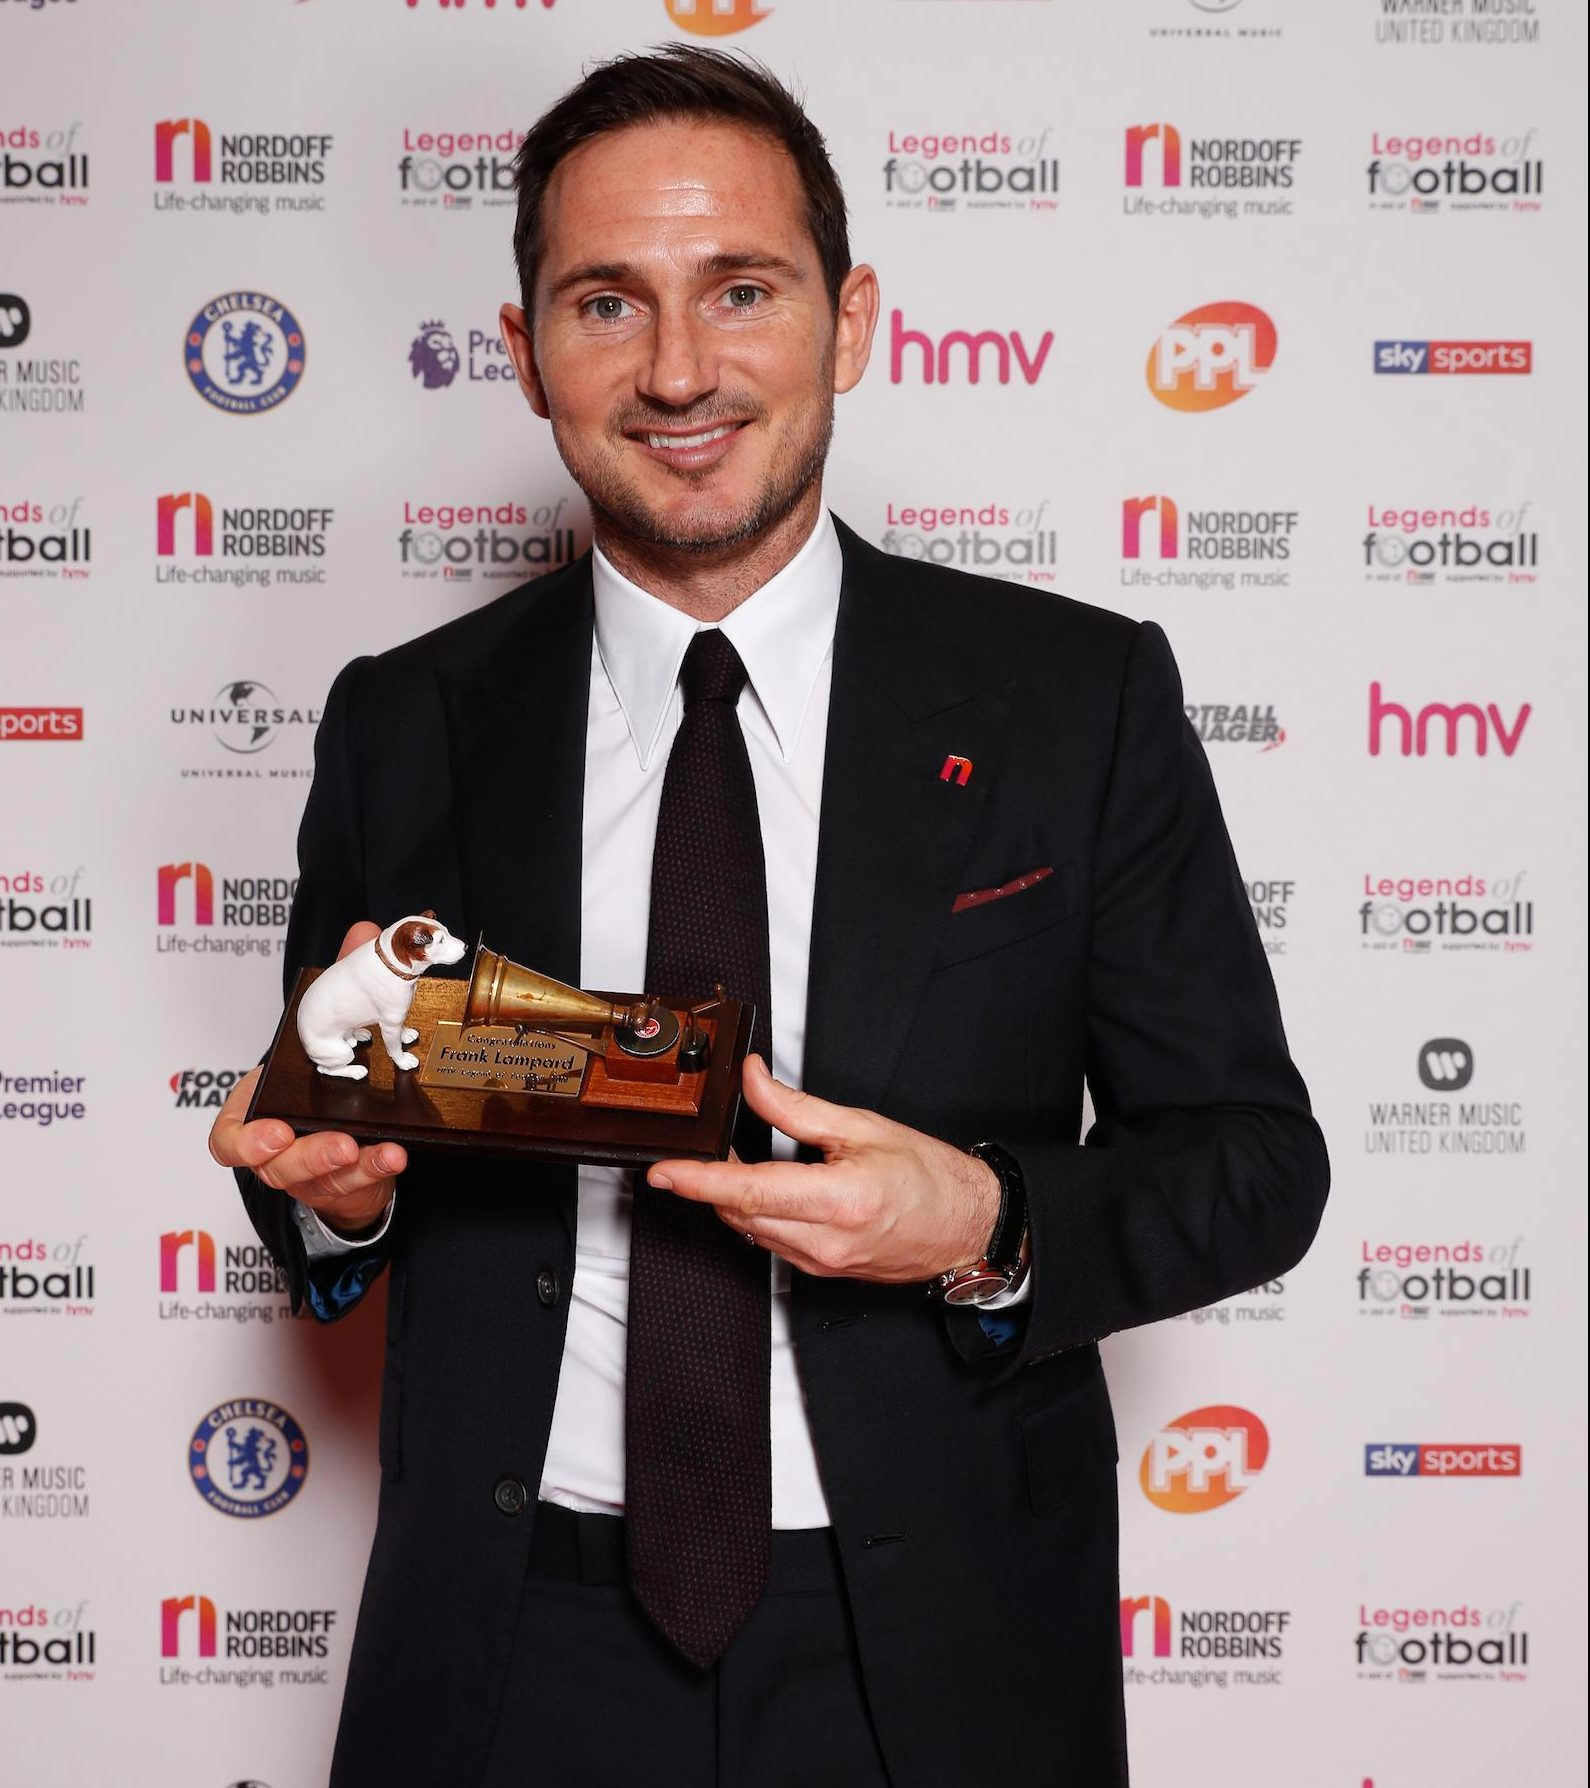 Frank Lampard has won Legends of Football's 2018 award at a charity event in London